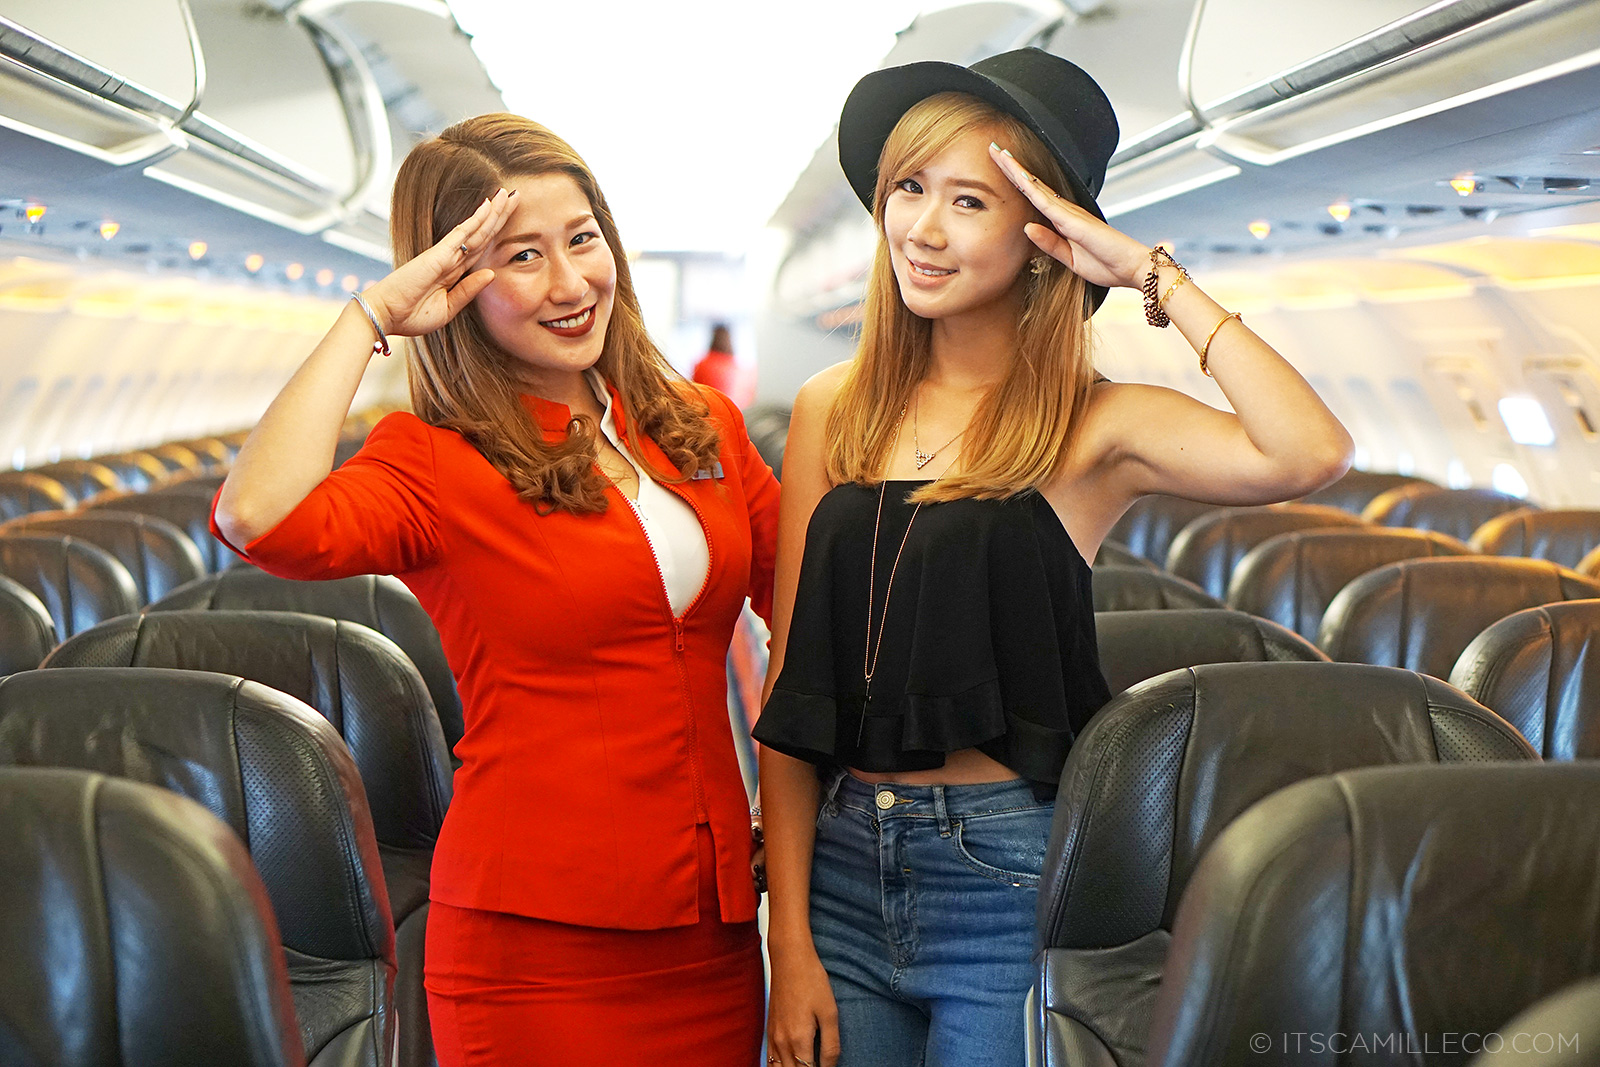 Air Asia Flight To Korea | itscamilleco.com